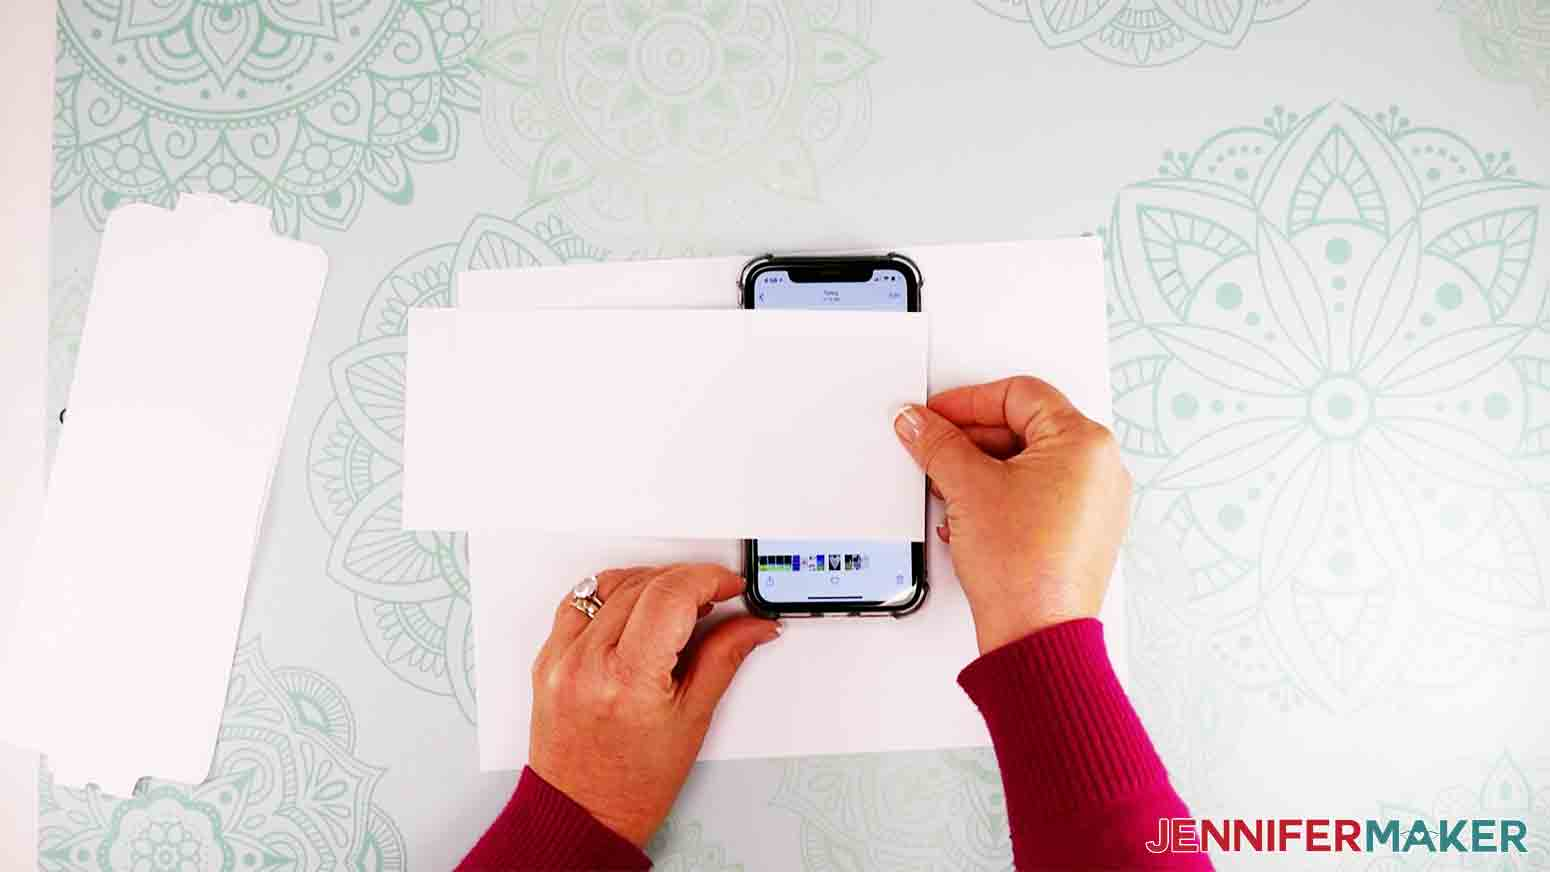 showing copy paper over iphone to trace